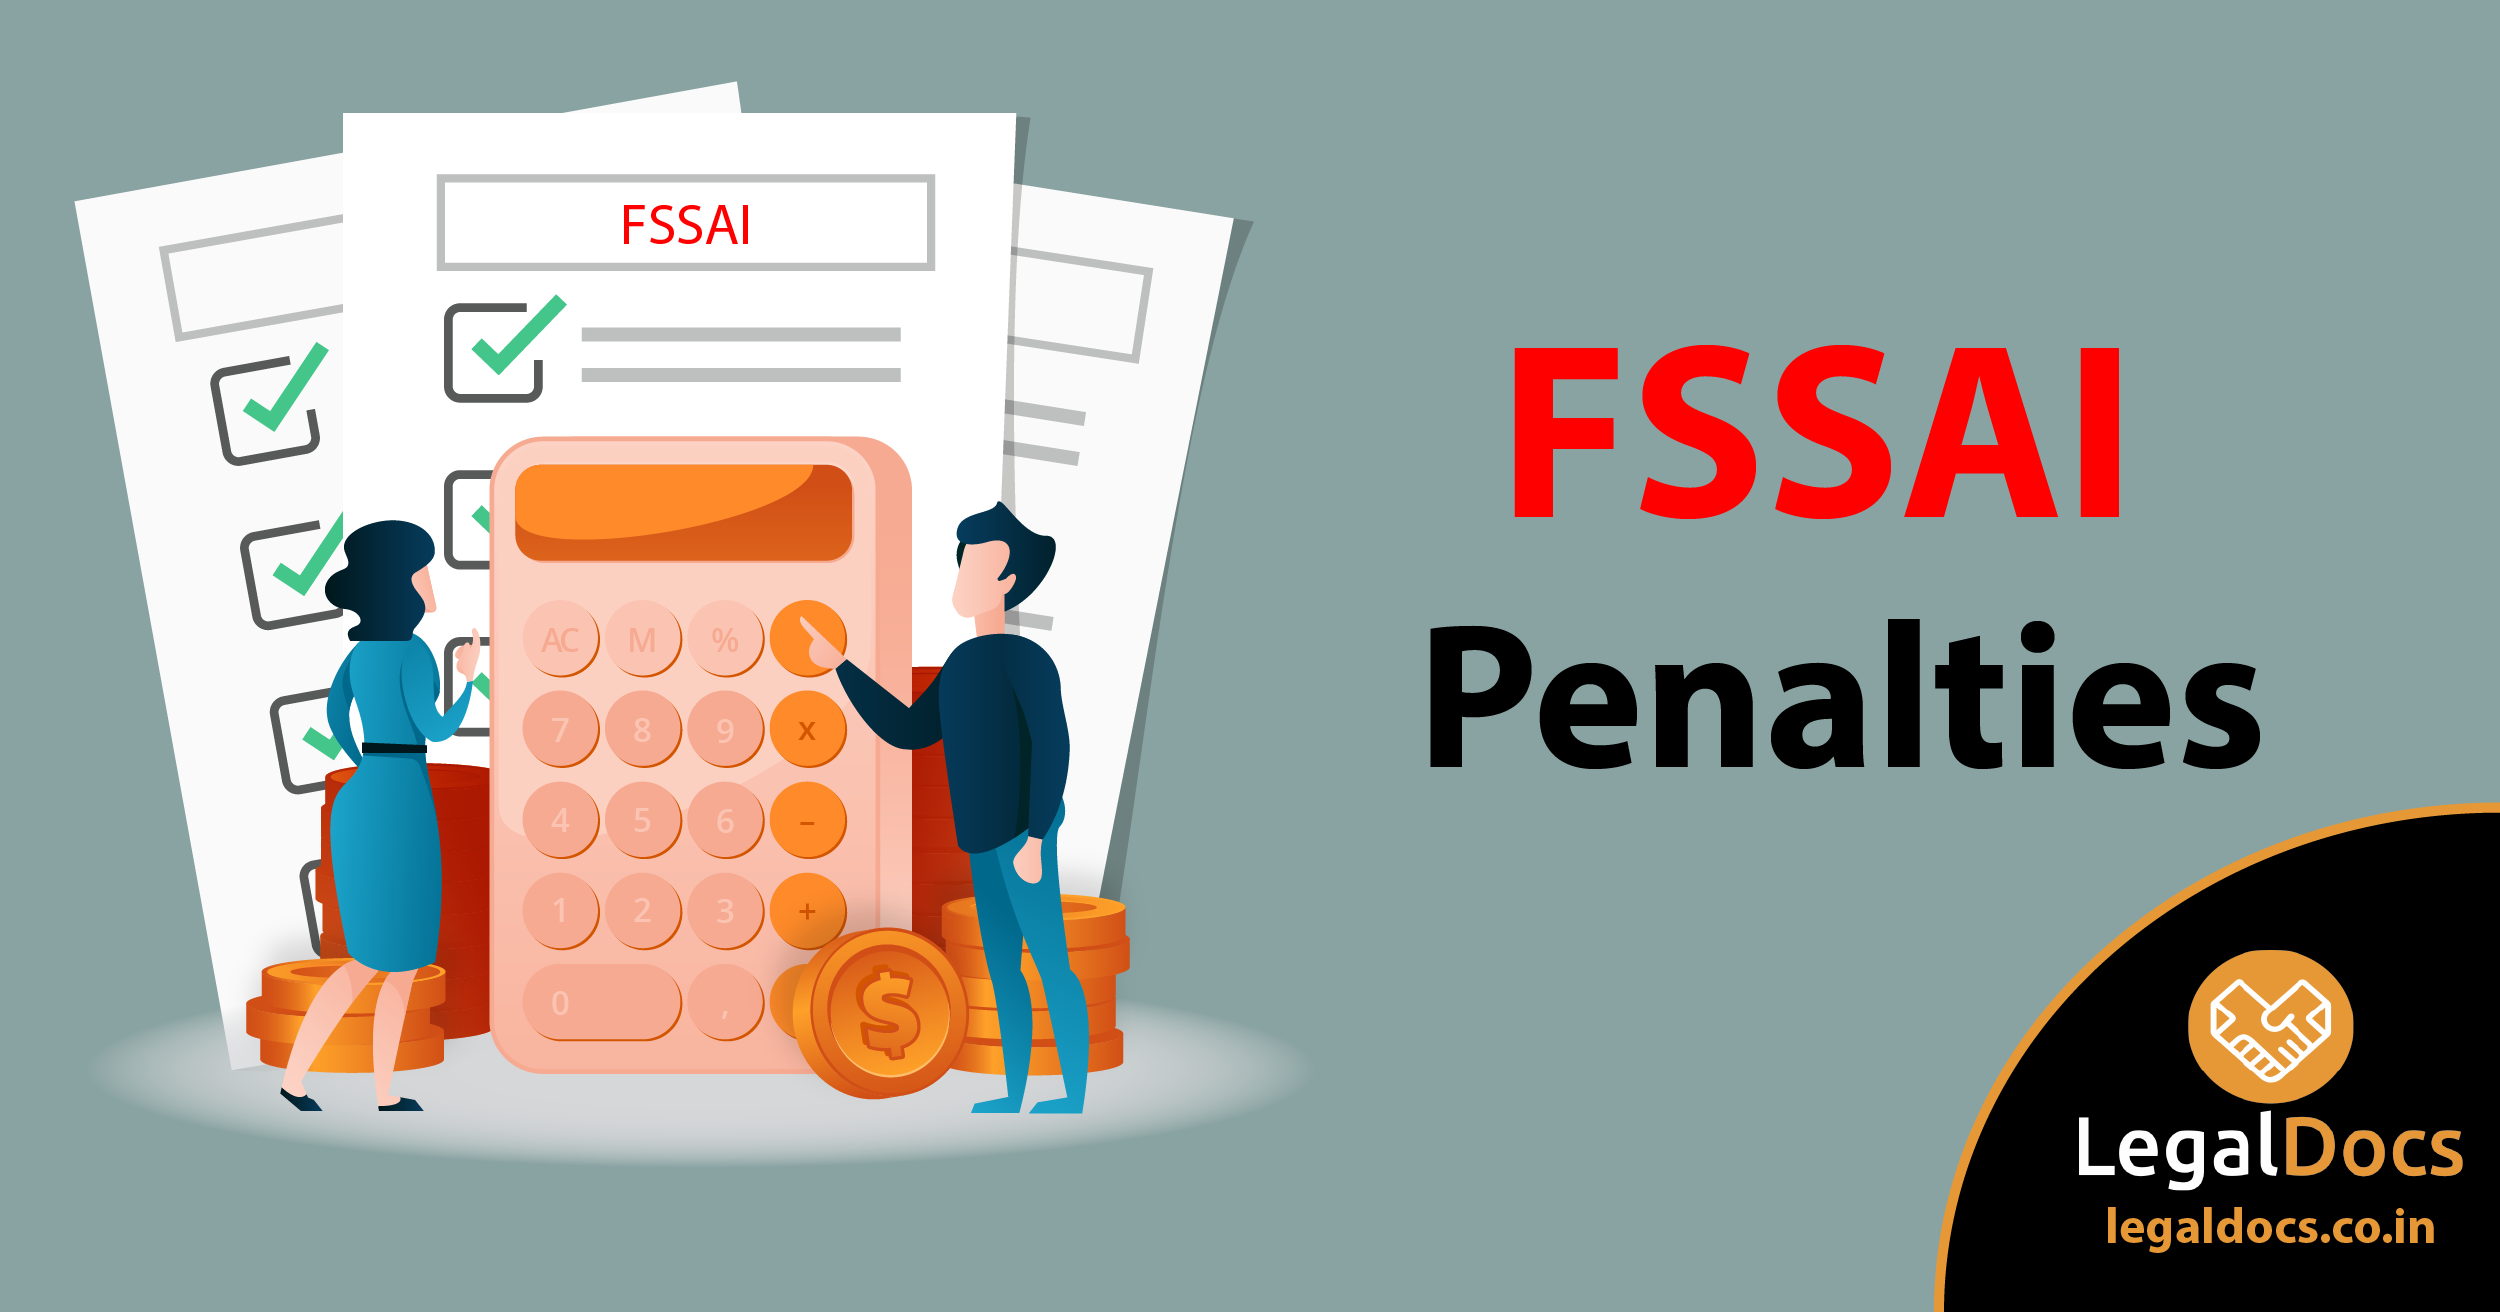 All you need to know about FSSAI Penalty - LegalDocs